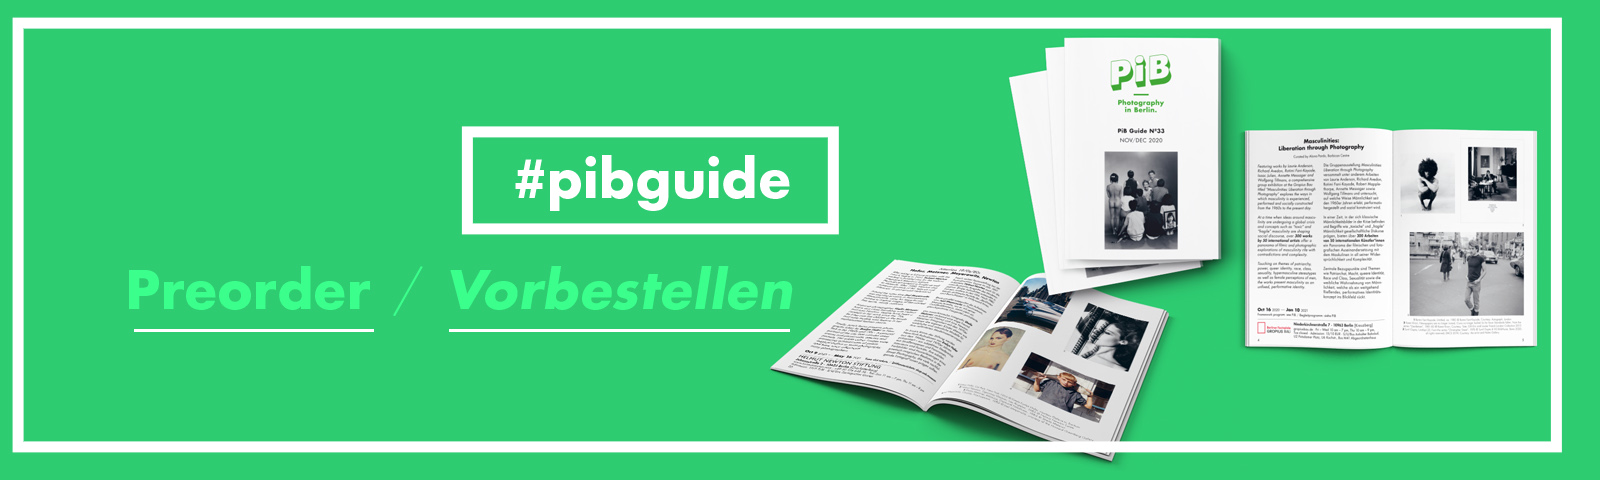 Pre-order Your PiB Guide Nº35 MAR/APR 2021, Published By PiB (Photography In Berlin)!